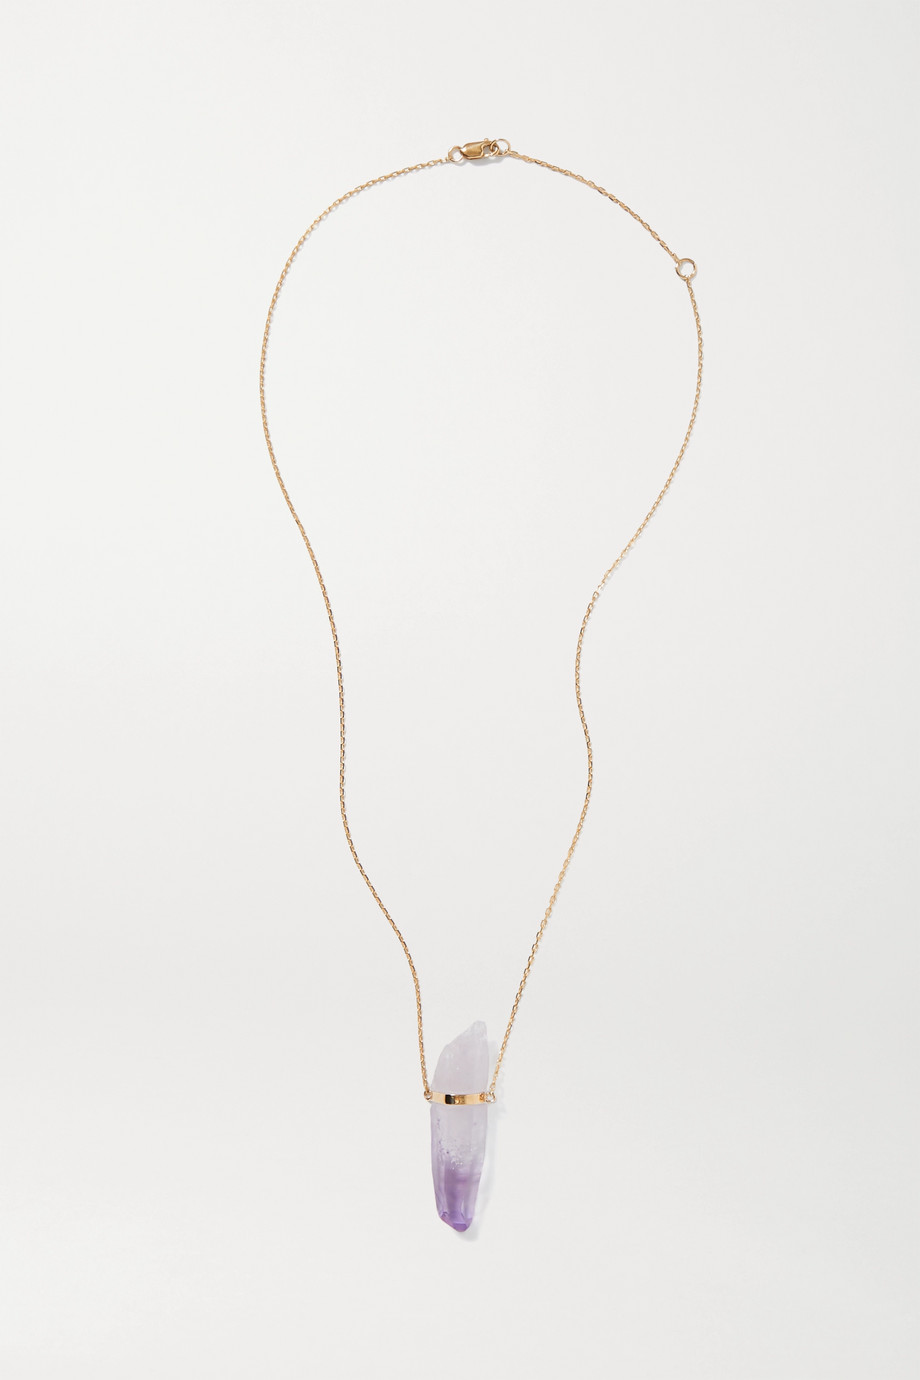 JIA JIA 14-karat gold amethyst necklace